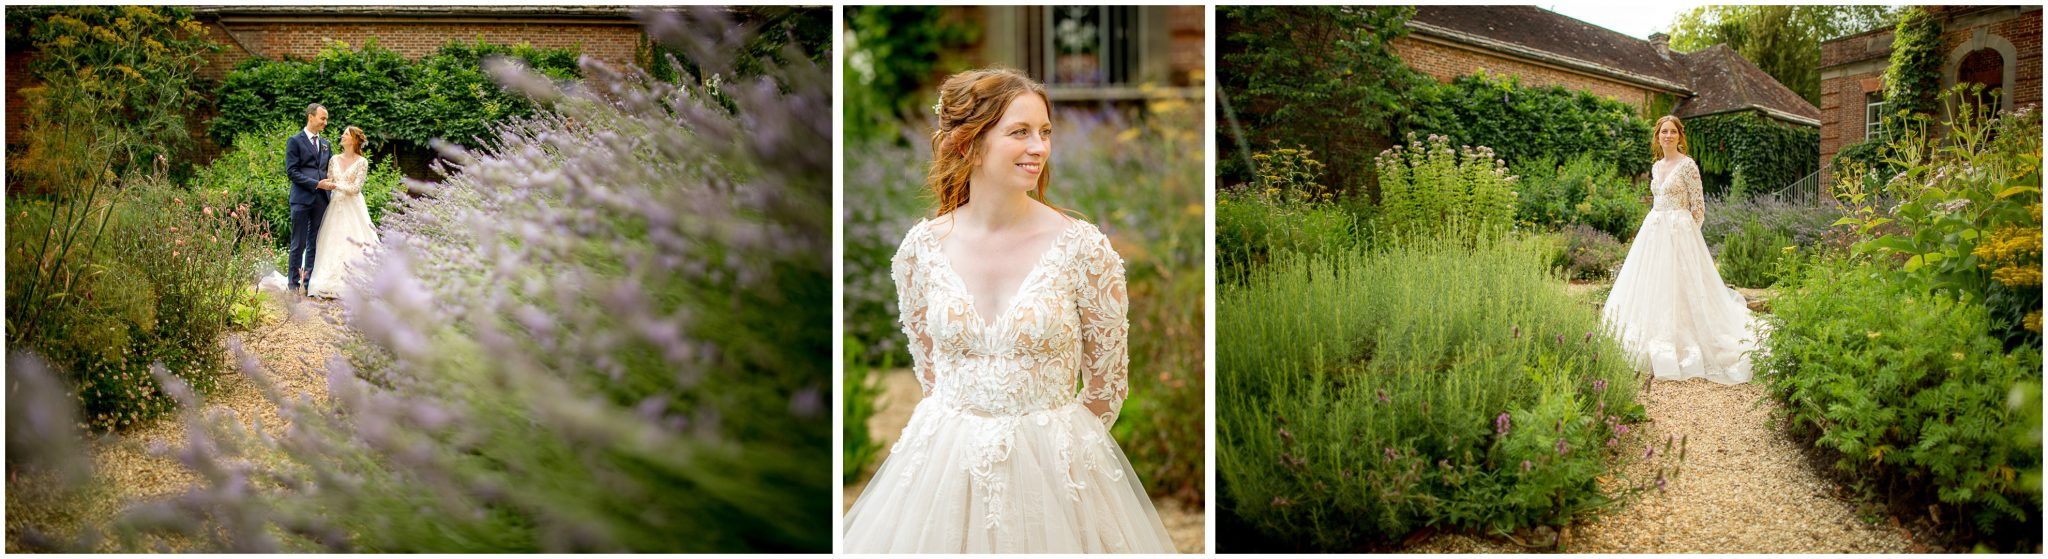 Couple portraits in the formal gardens behind the house